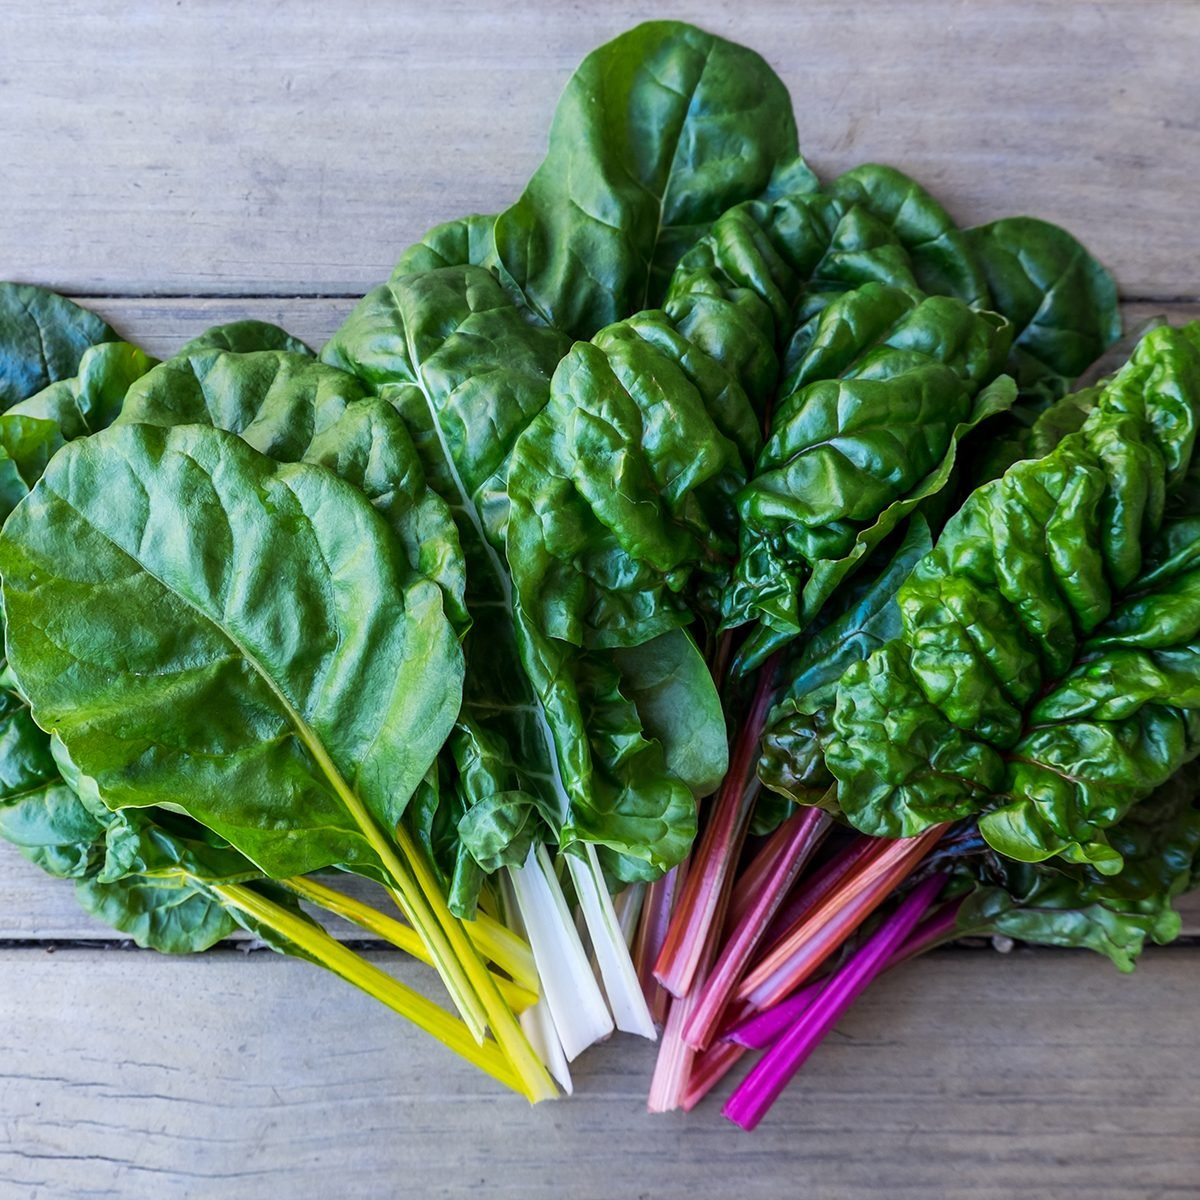 Dark Greens: Leafy Greens 101: Your Guide To Leafy Green Vegetables